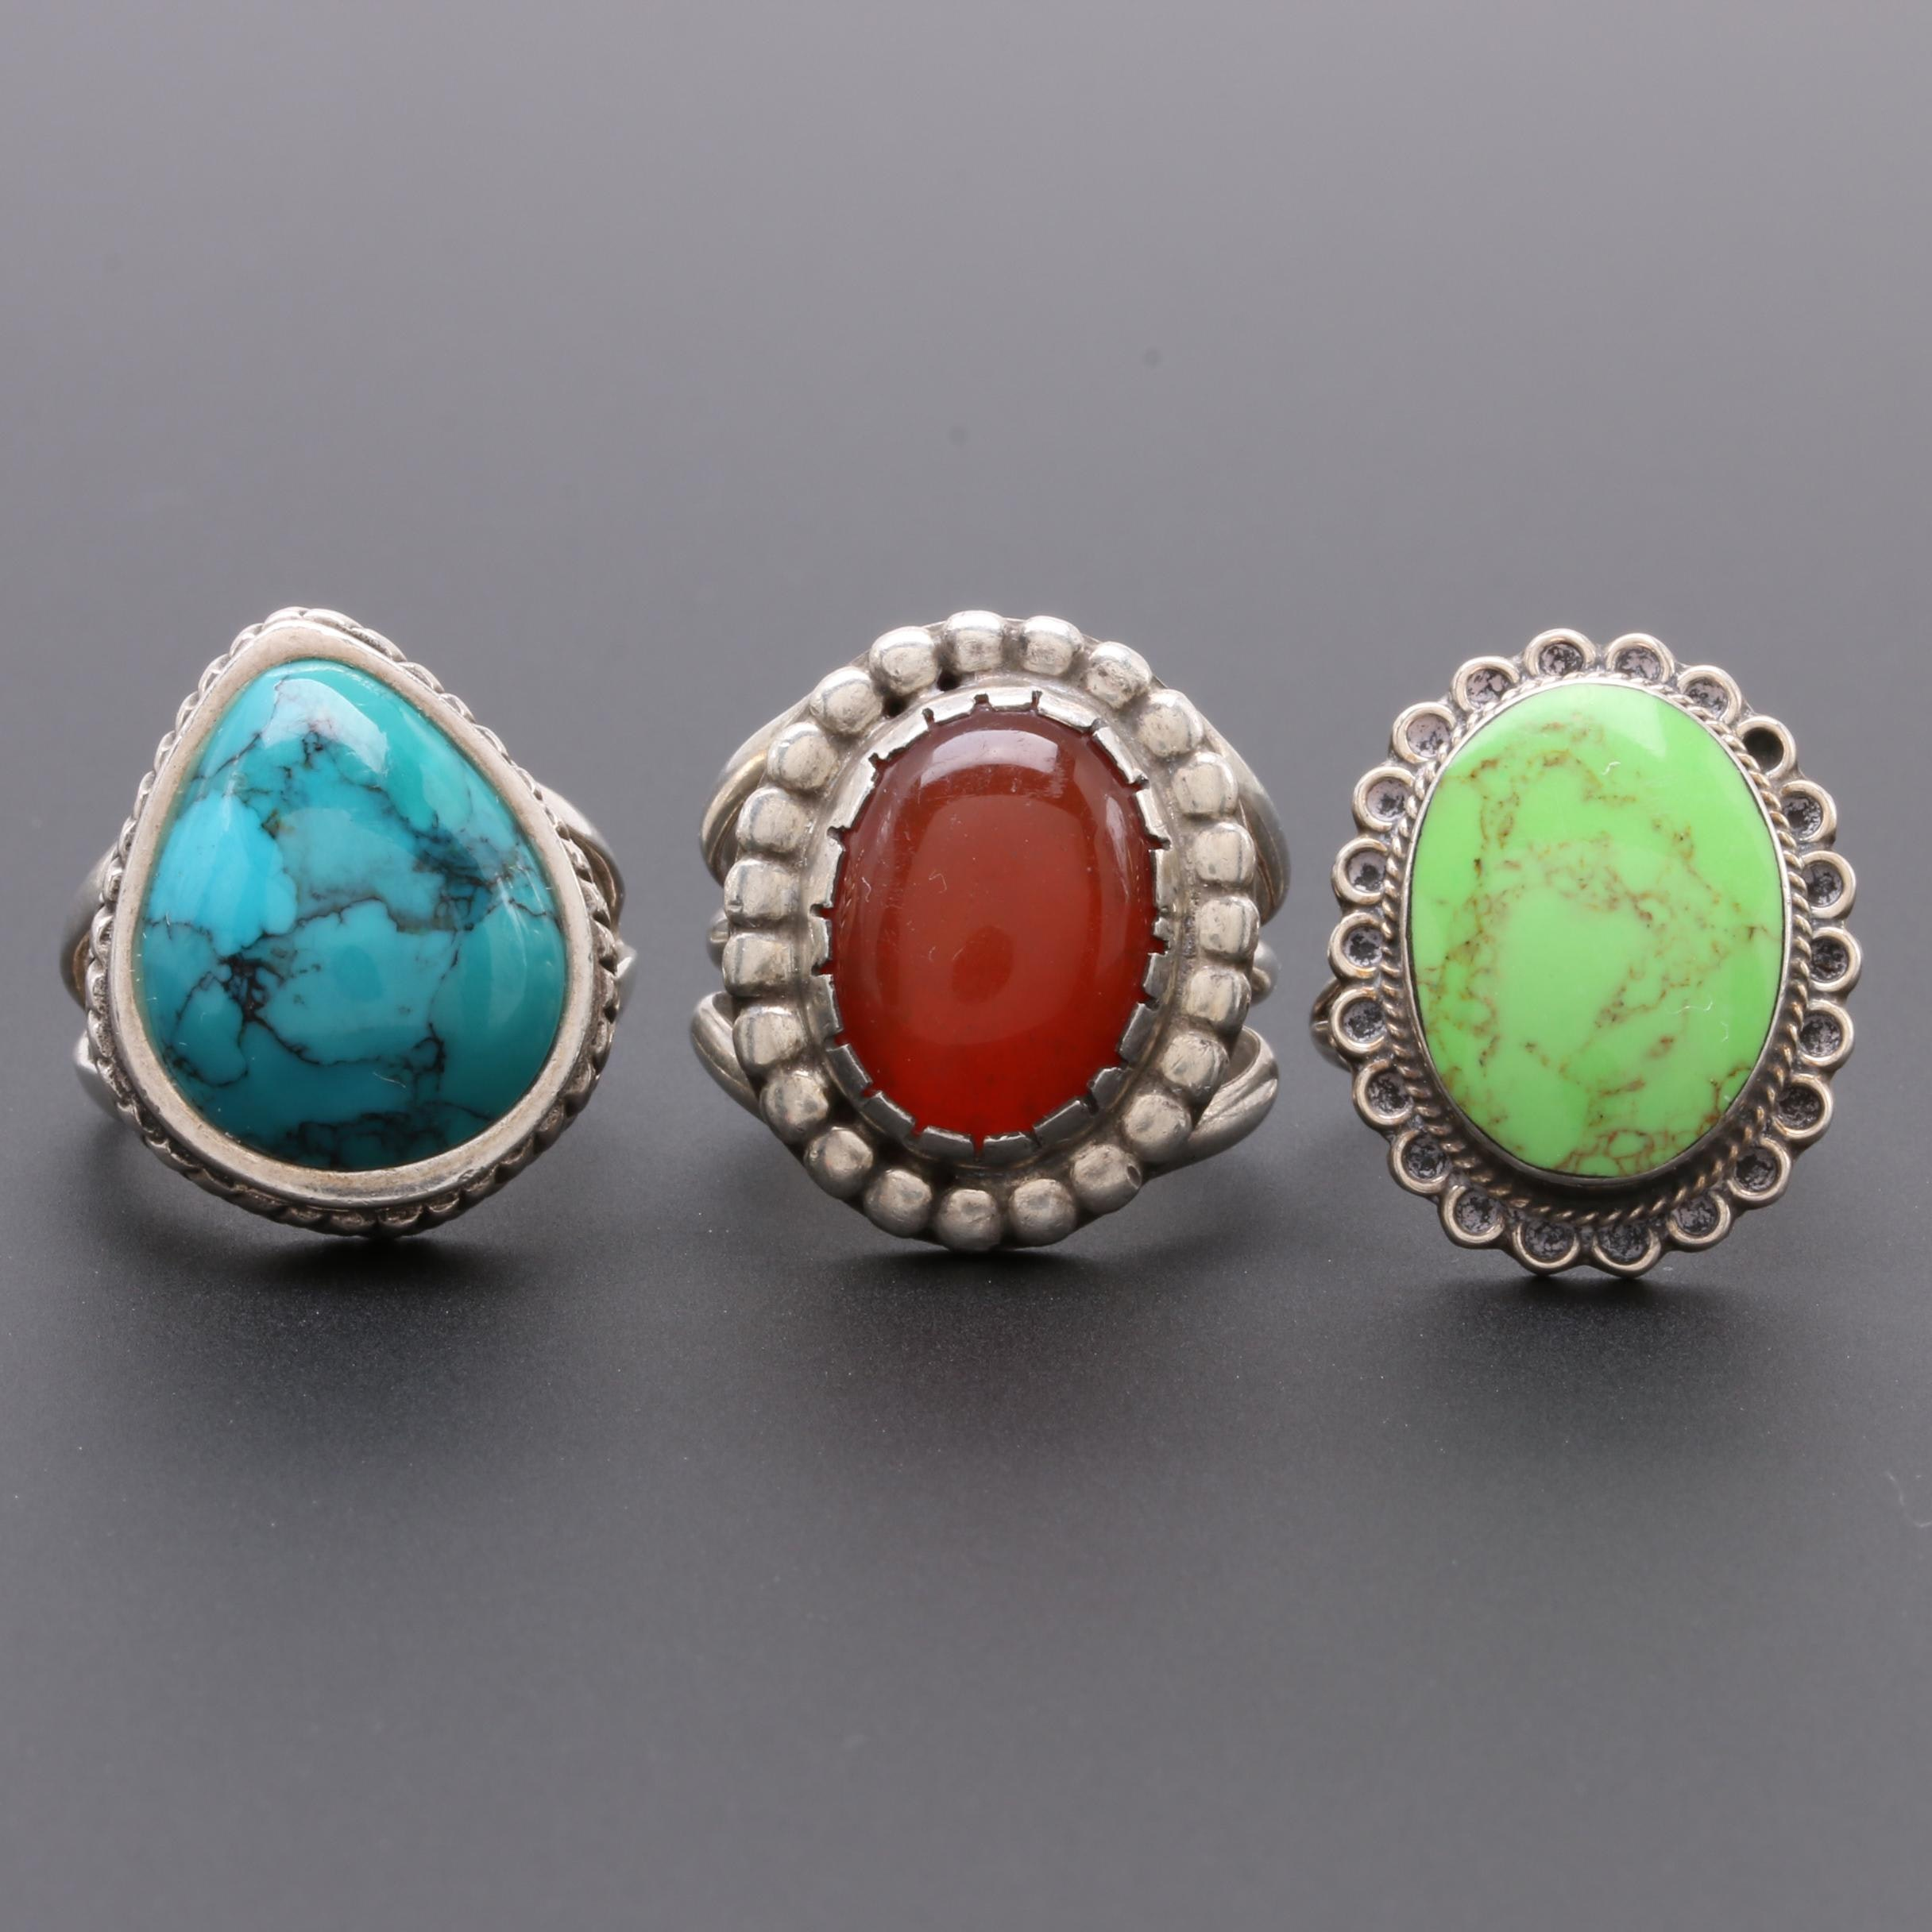 Sterling Silver Ring Selection Including Gaspeite, Turquoise, and Carnelian